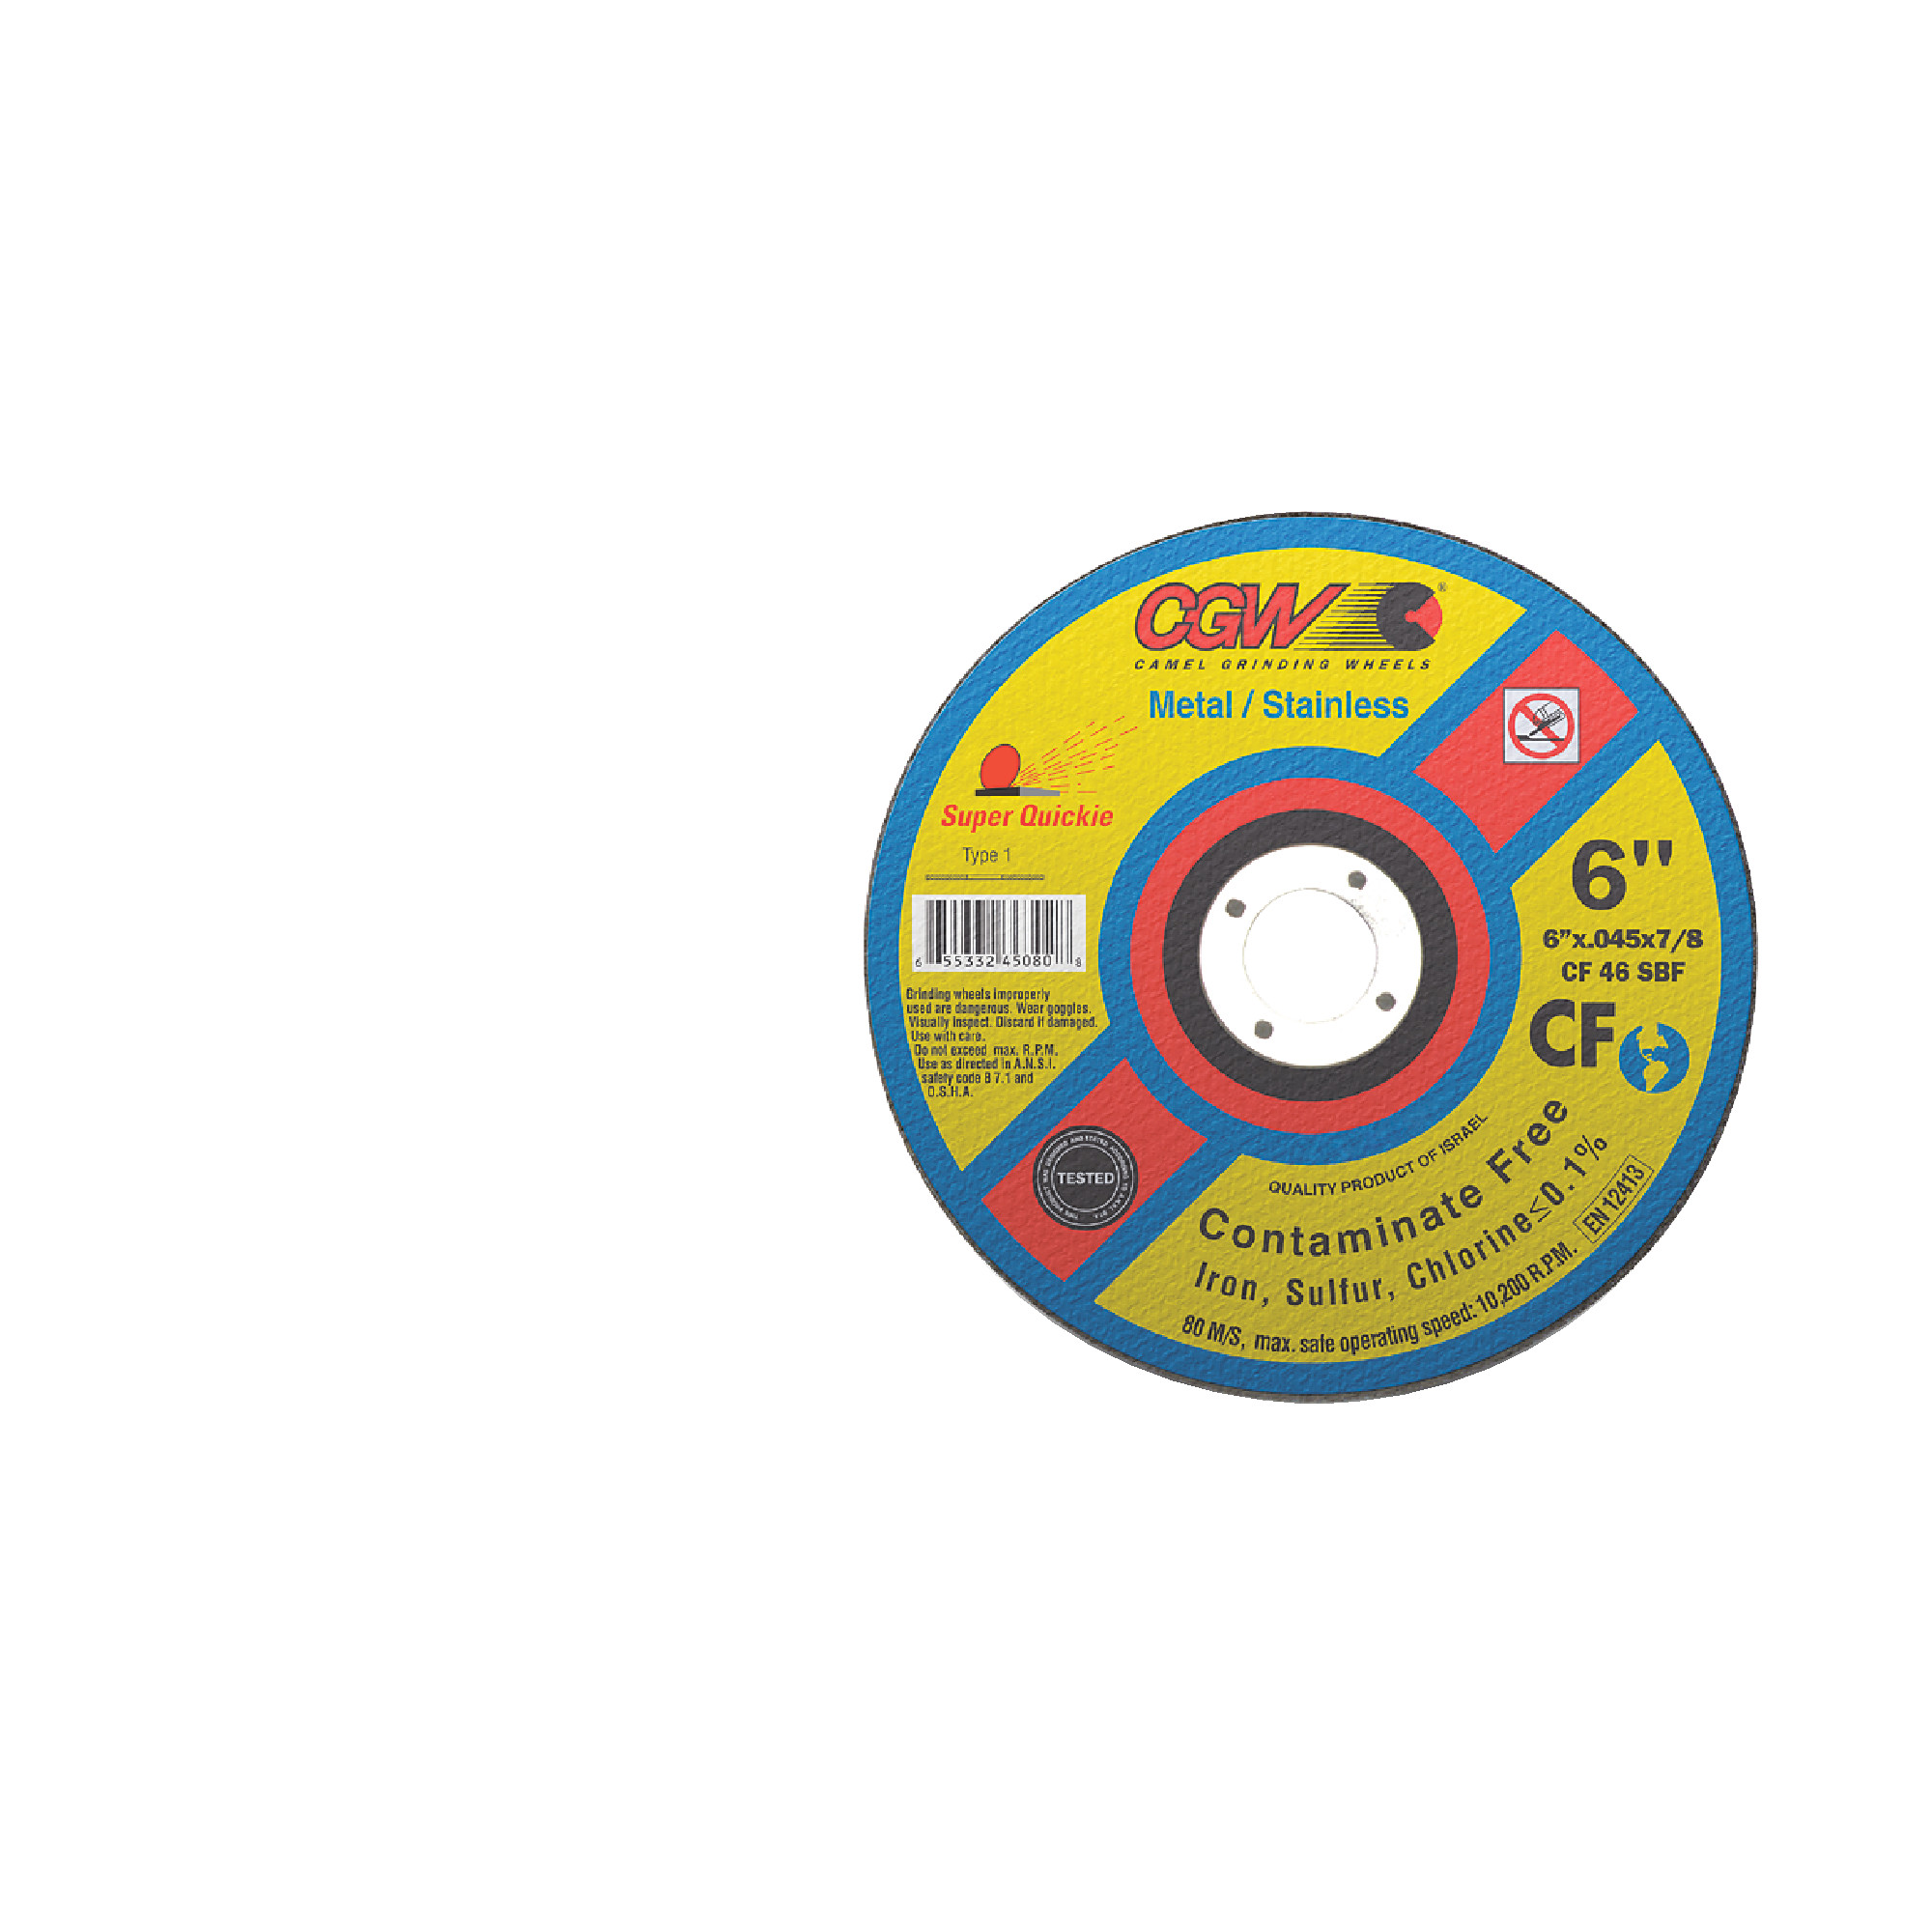 """CGW Contaminate Free Quickie Cut-Off Wheel - Diameter: 4-1/2""""   Thickness: 0.045   Hole Size: 7/8"""""""